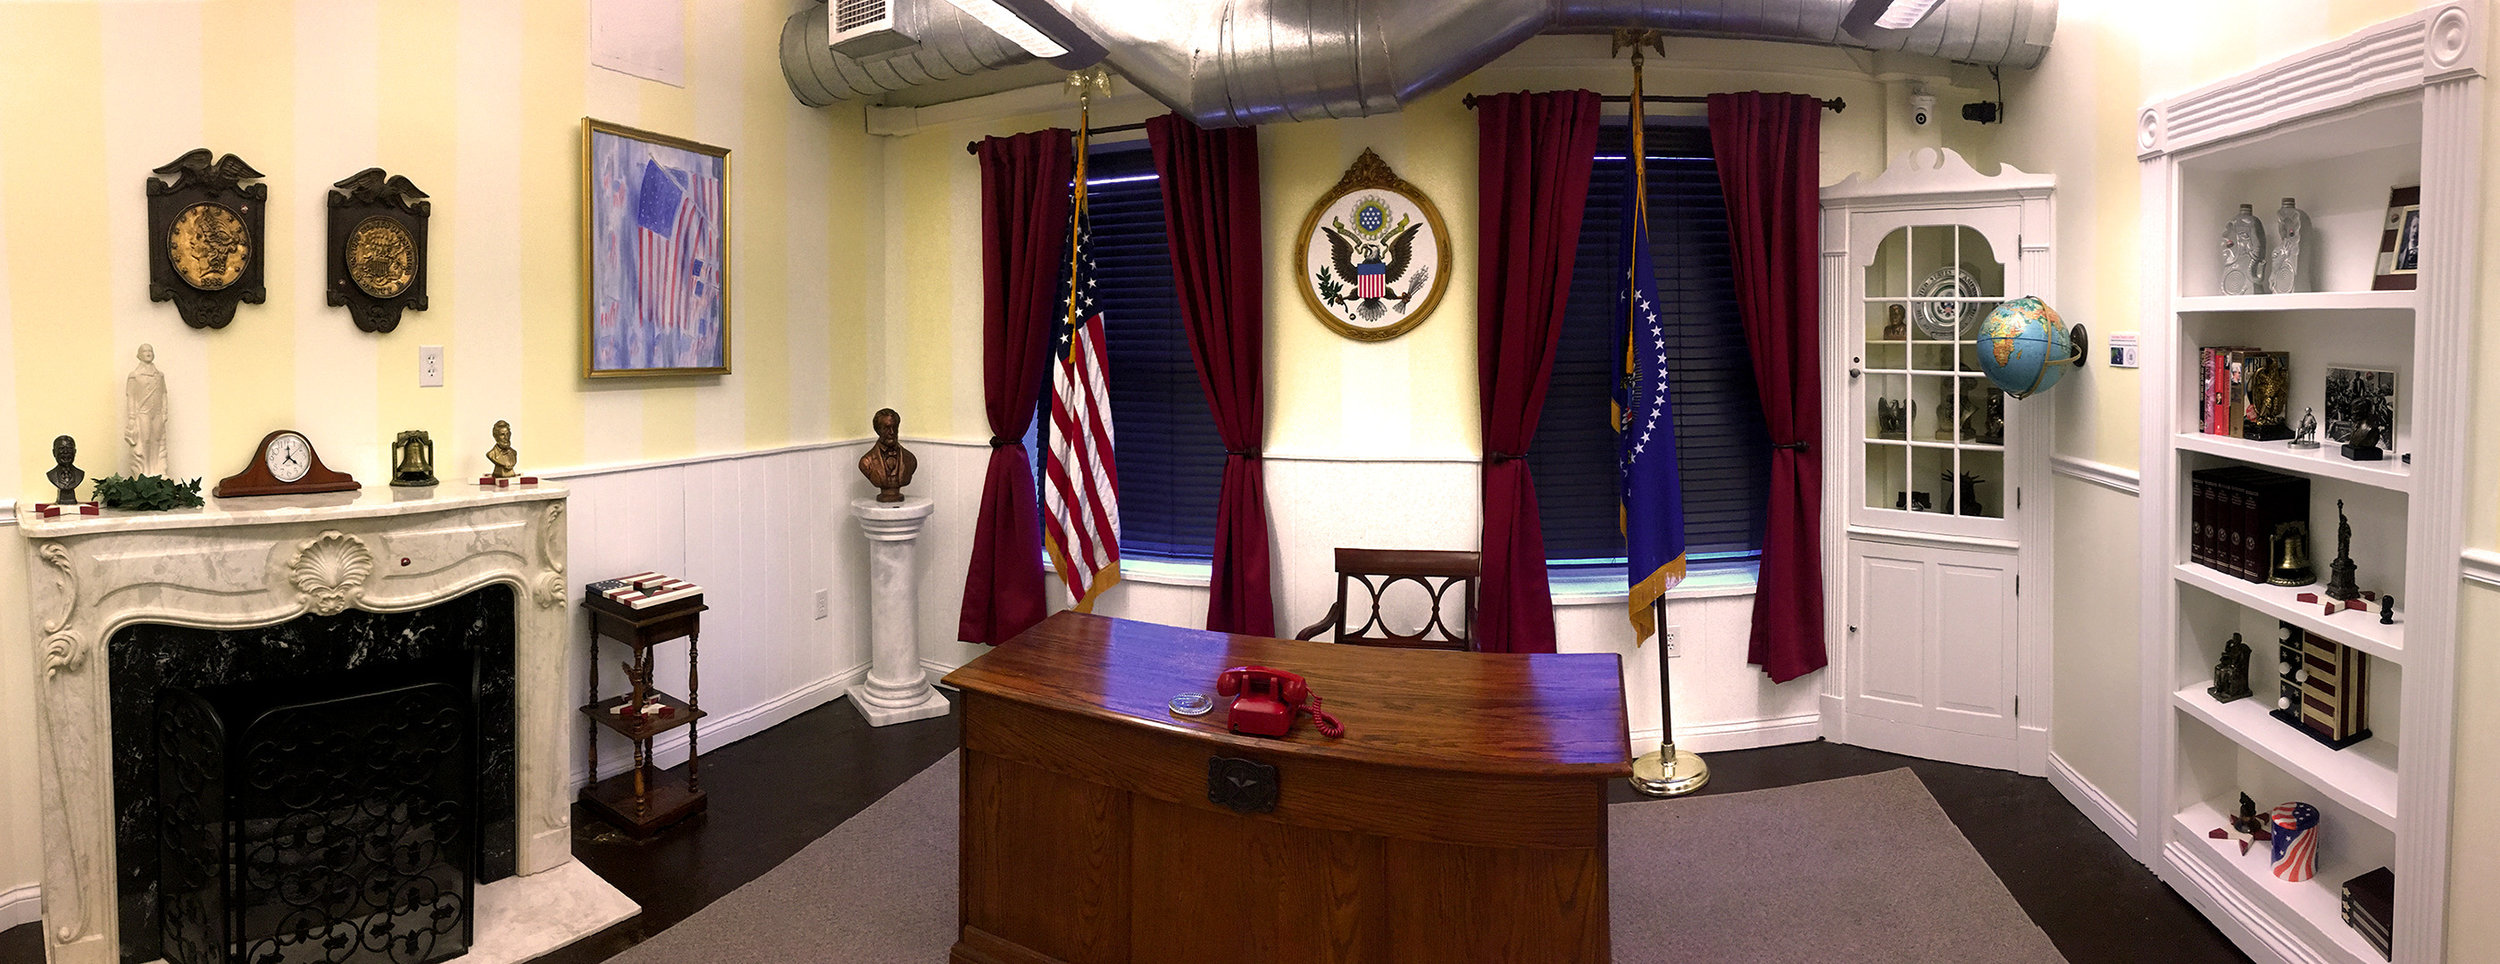 Red Herring Escape Rooms — The Oval-ish Office - Red Herring Escape ...